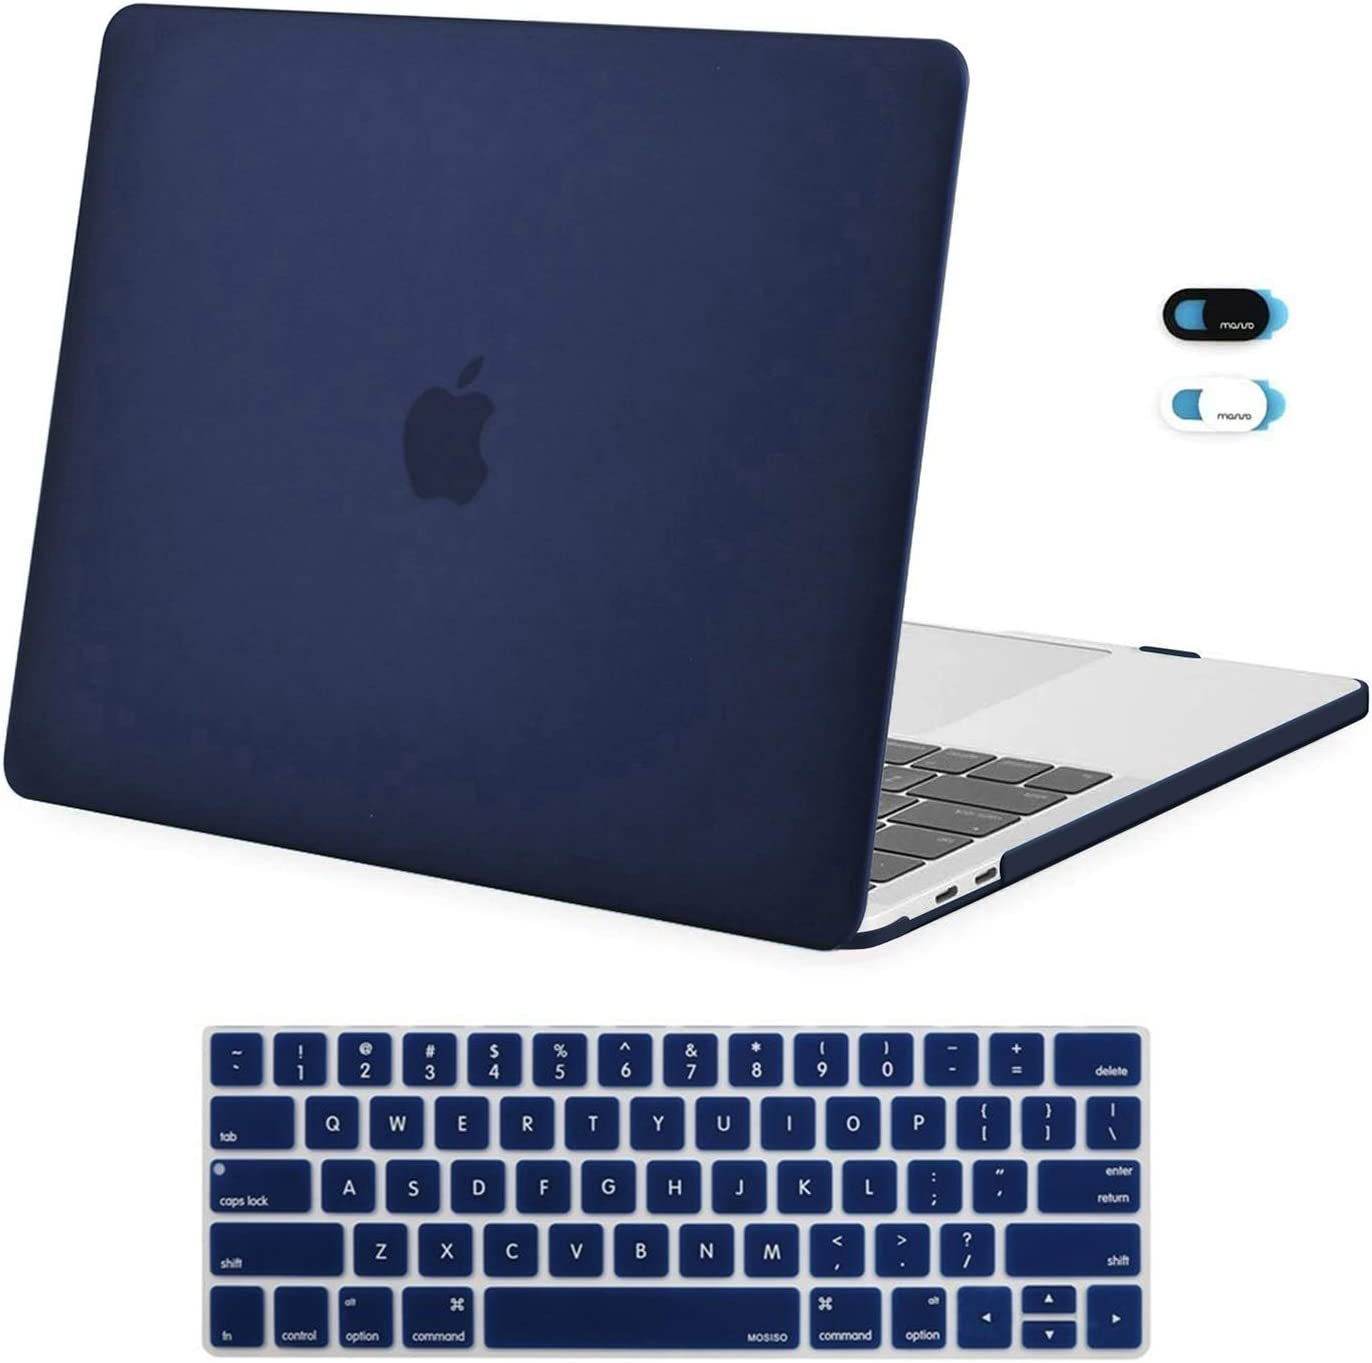 MOSISO MacBook Pro 13 inch Case 2019 2018 2017 2016 Release A2159 A1989 A1706 A1708, Plastic Hard Shell Case & Keyboard Cover Skin & Webcam Cover Compatible with MacBook Pro 13 inch, Navy Blue